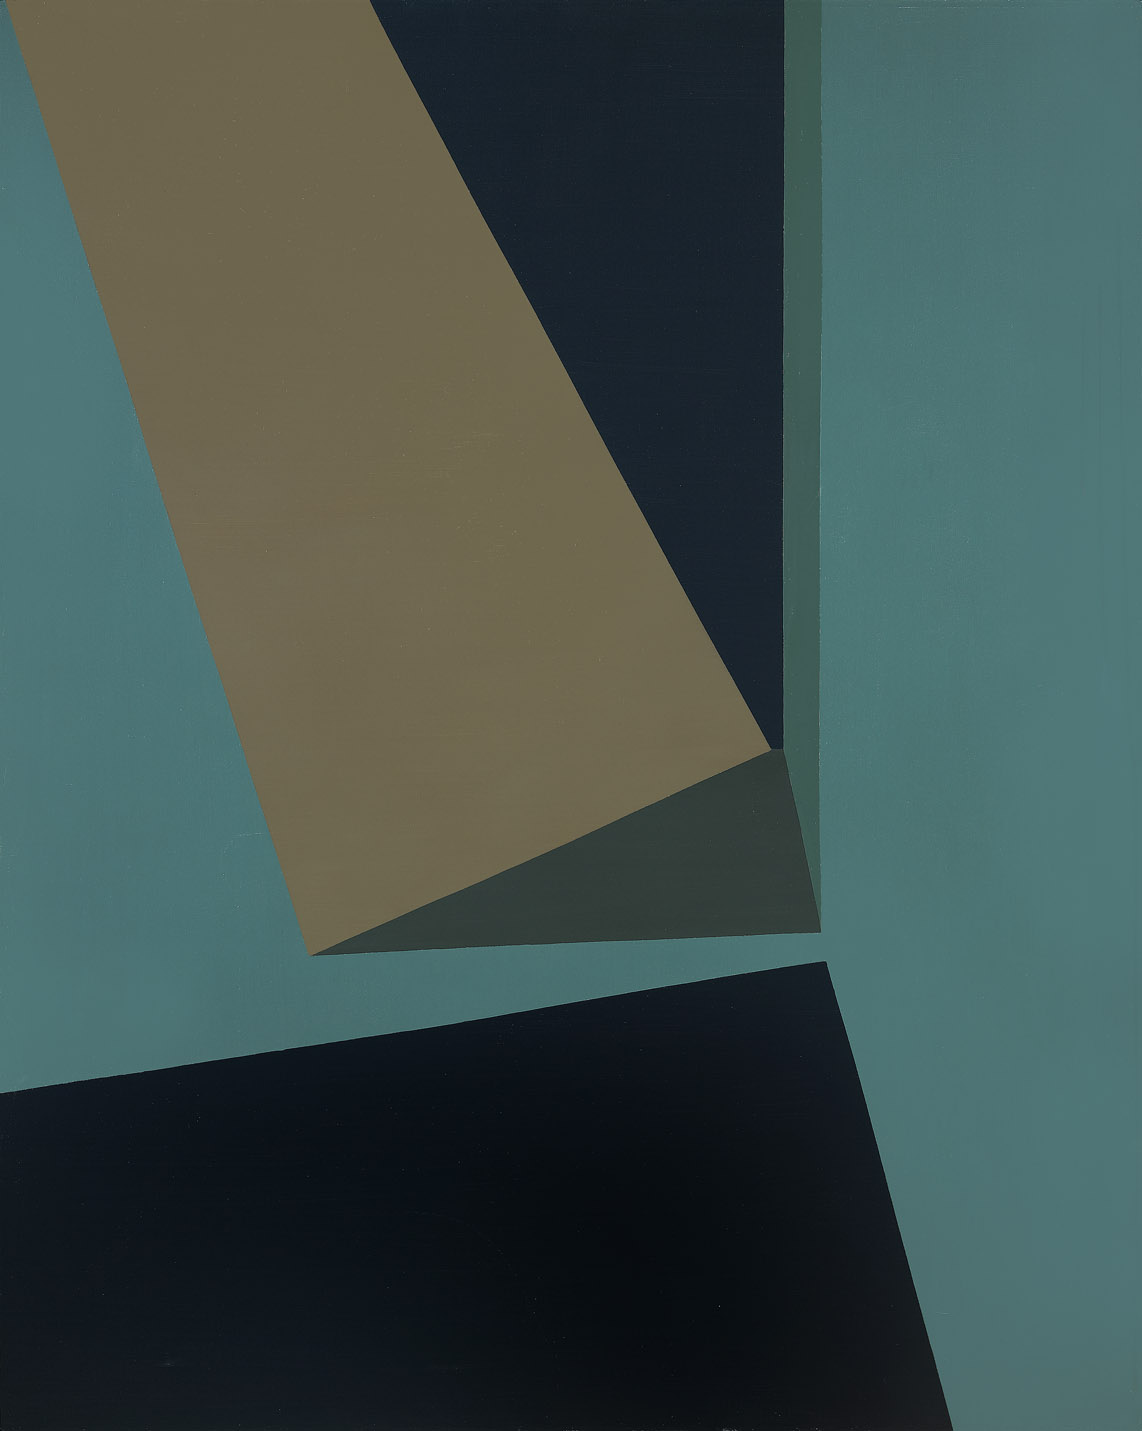 Discovery II , 1961  oil on canvas 50 x 40 inches; 127 x 101.6 centimeters